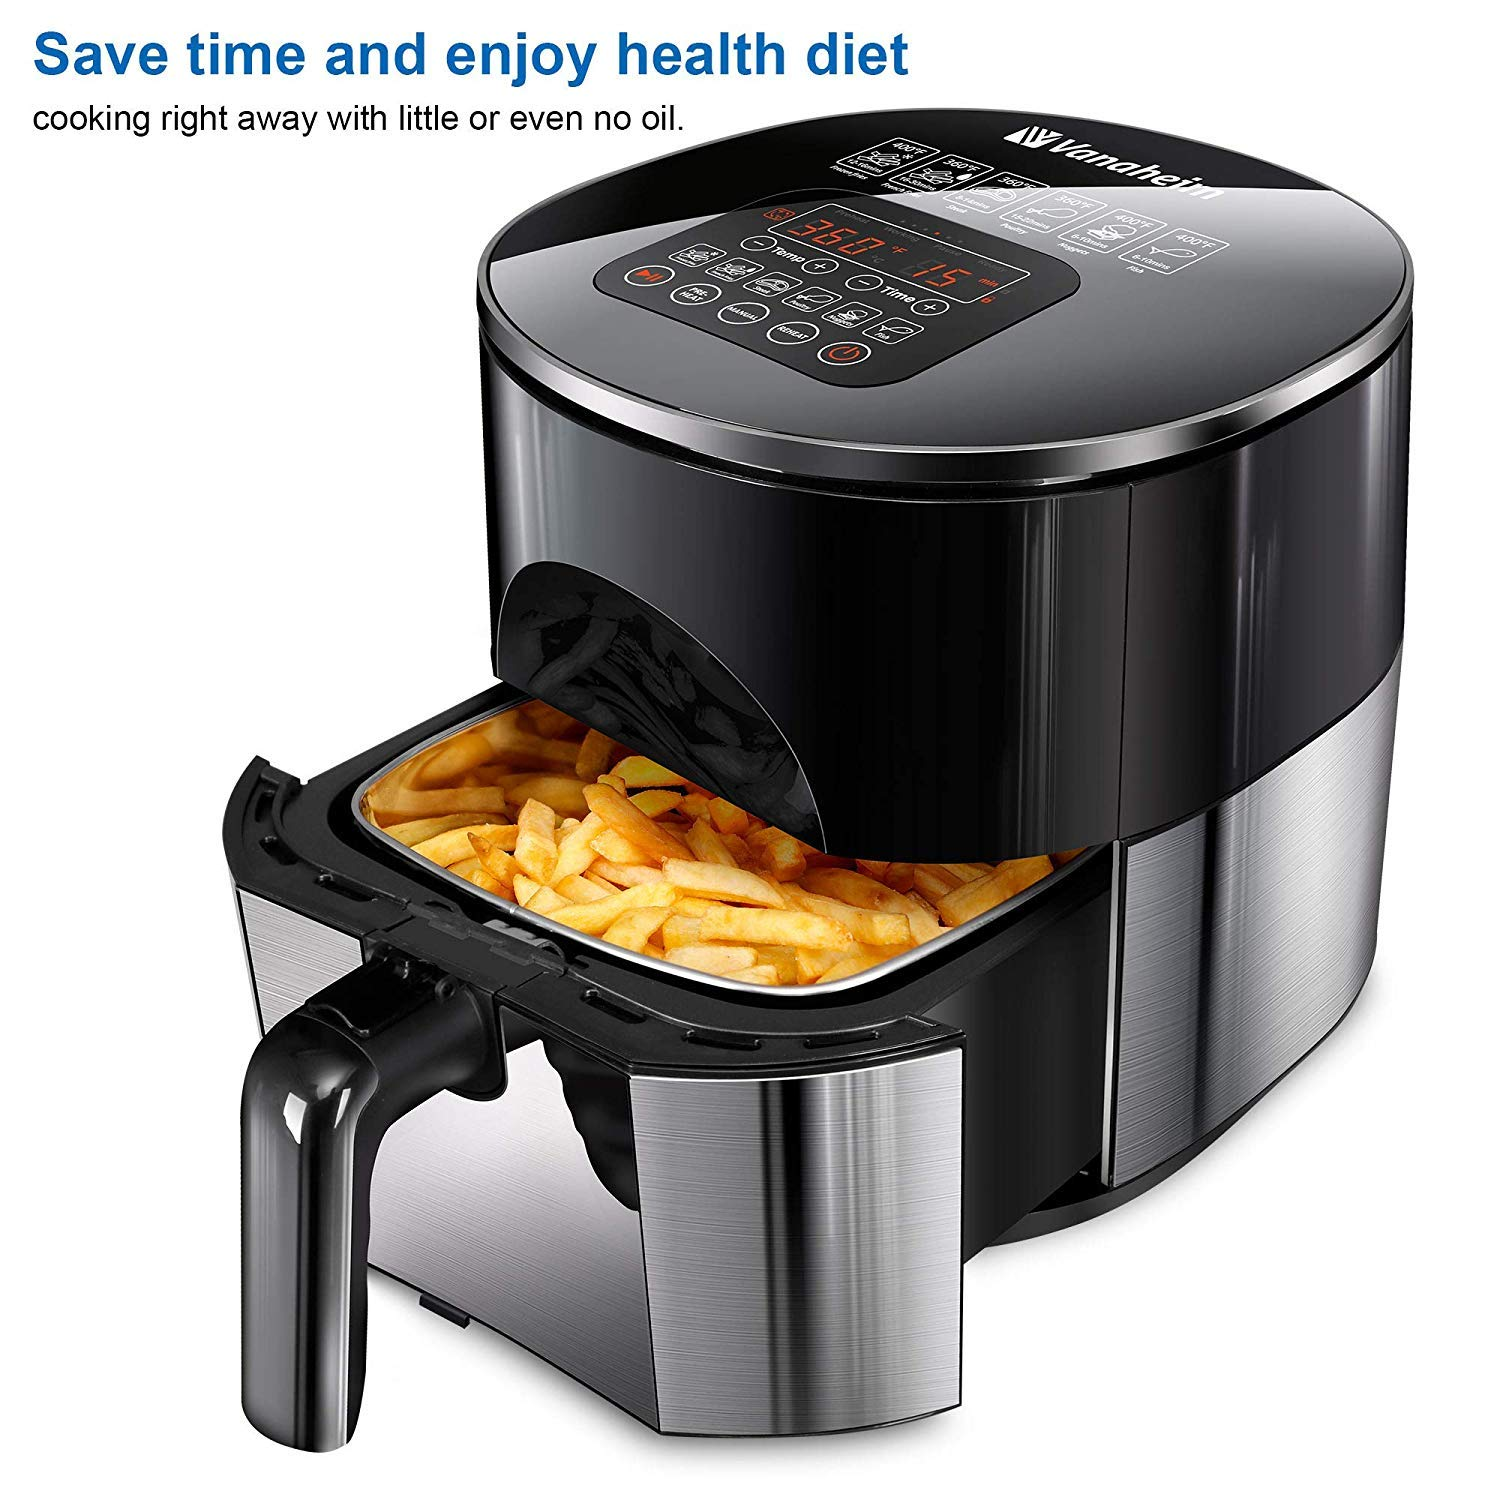 Vanaheim 4.2Qt Touch Screen Air Fryer 6-in-1 with Stainless Steel Fryer Basket and Recipe Book for Healthy Oilless Fry